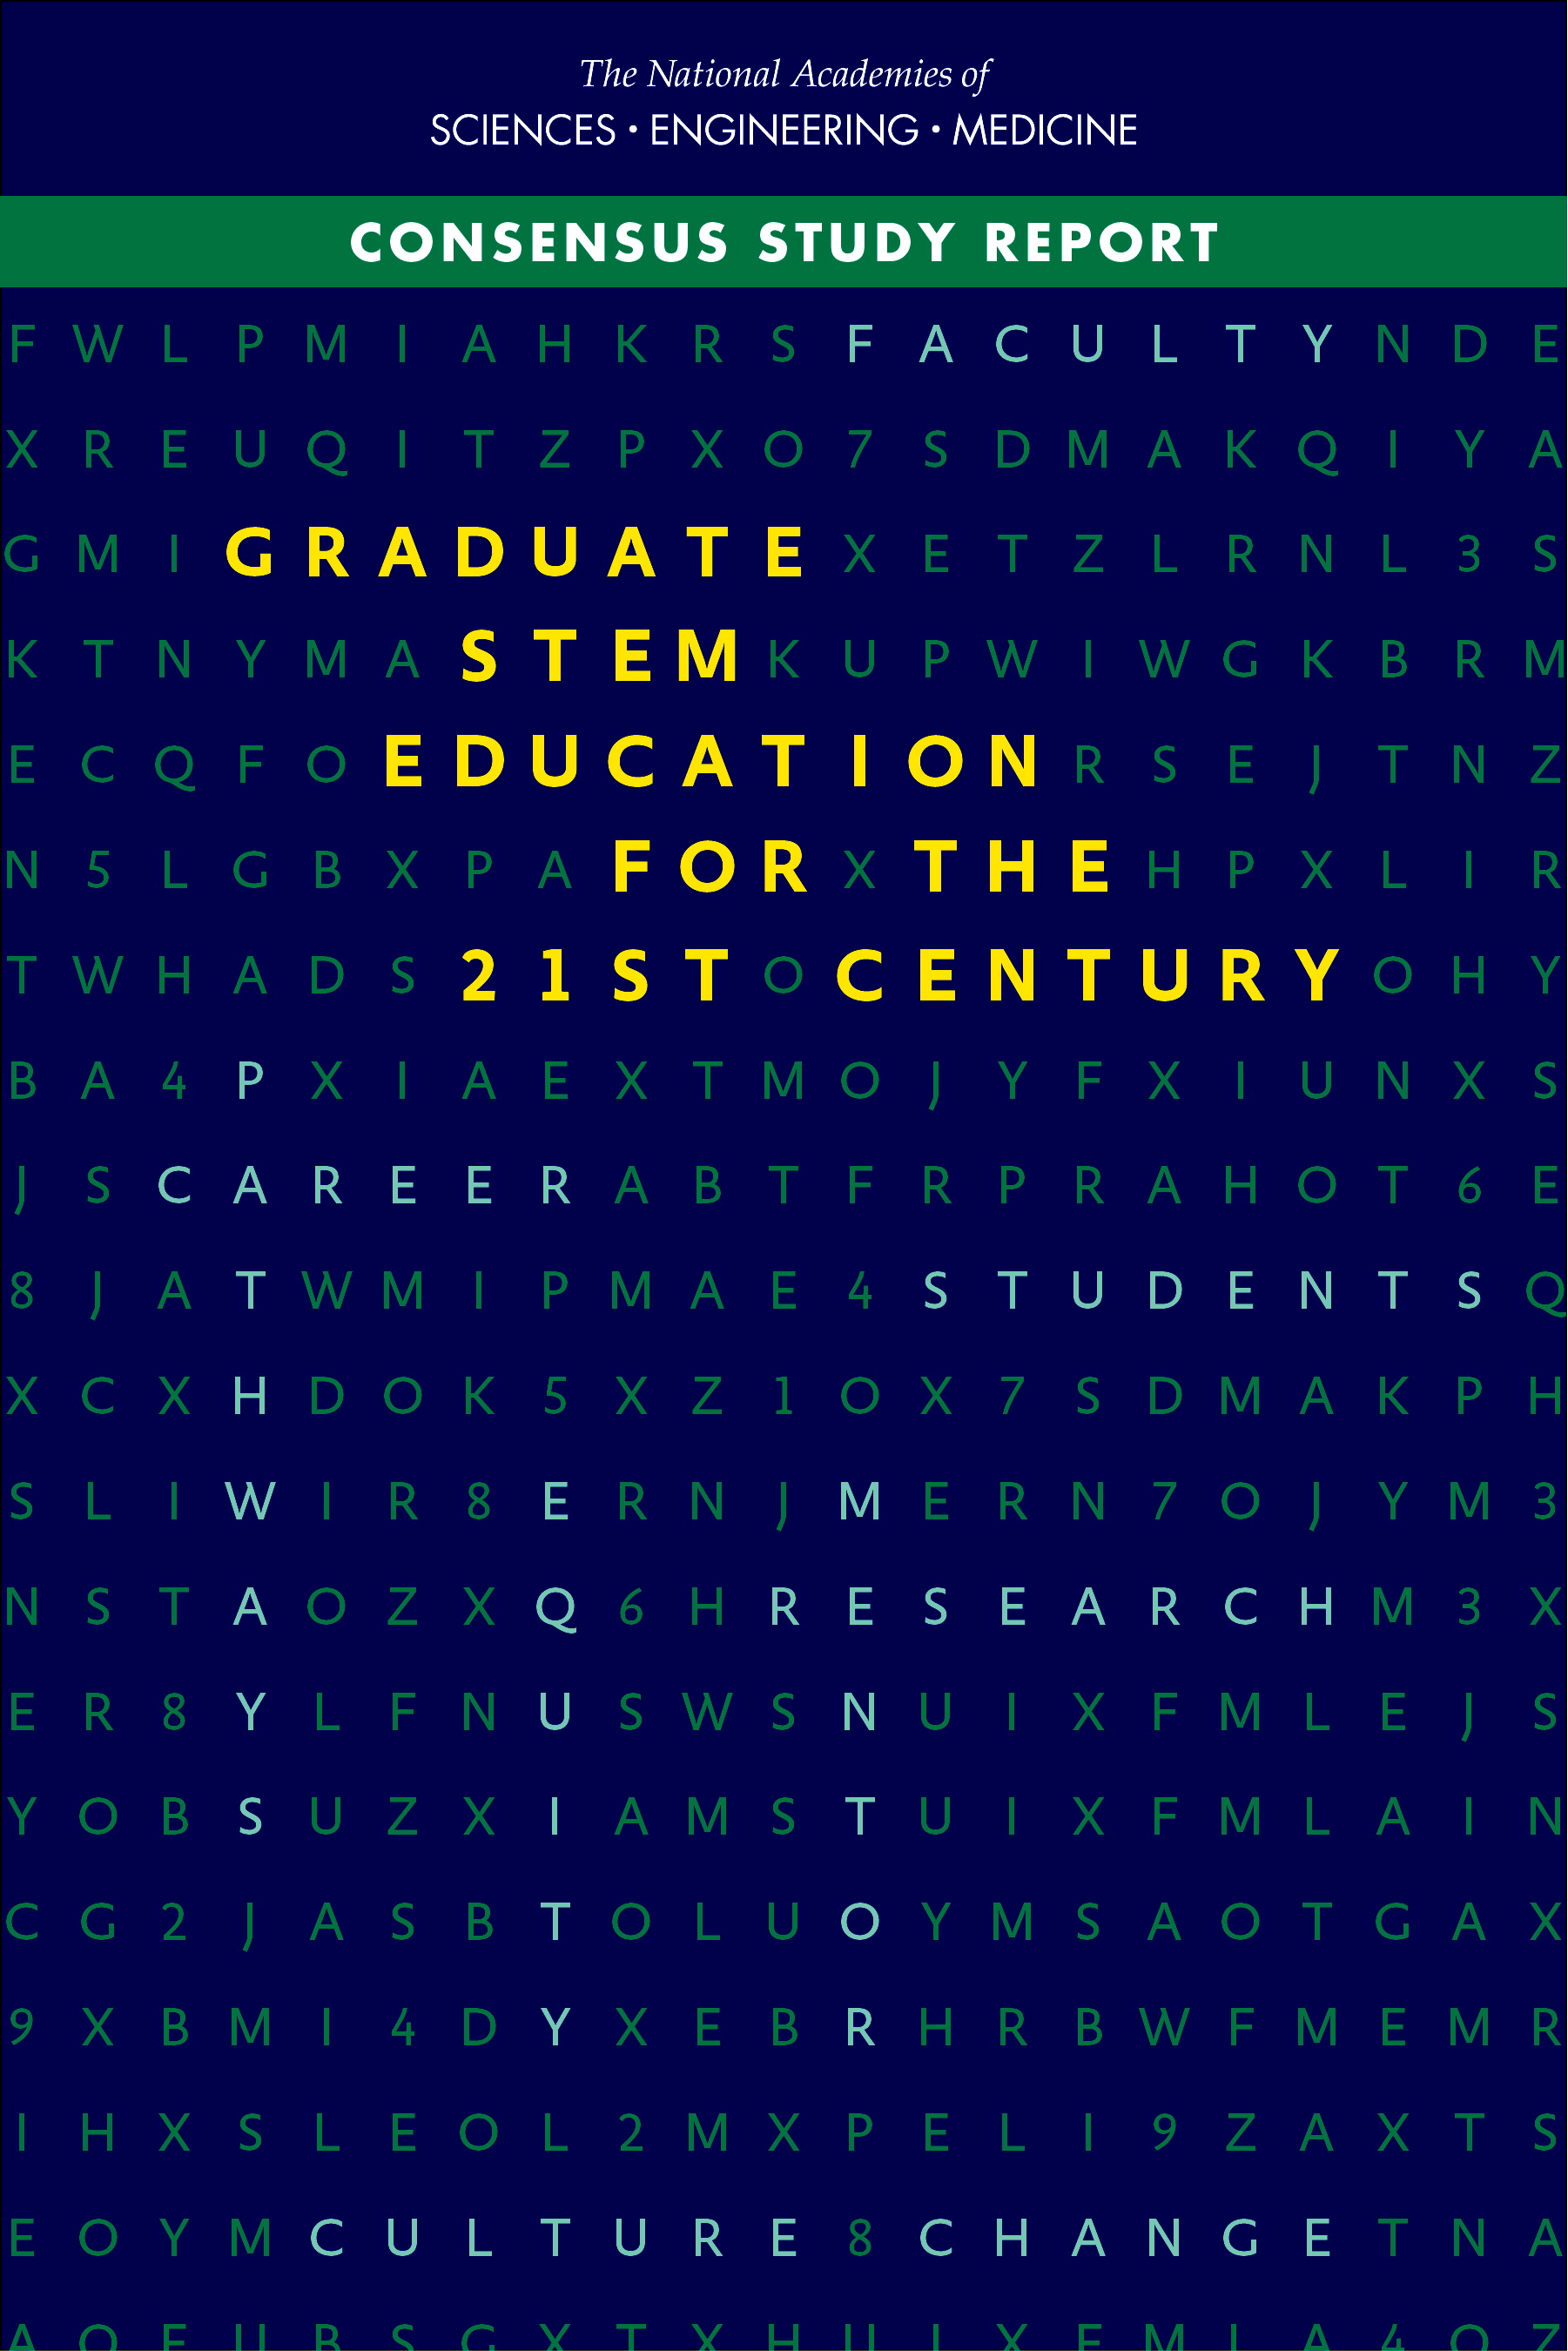 Revitalizing graduate stem education for the 21st century report highlights malvernweather Image collections